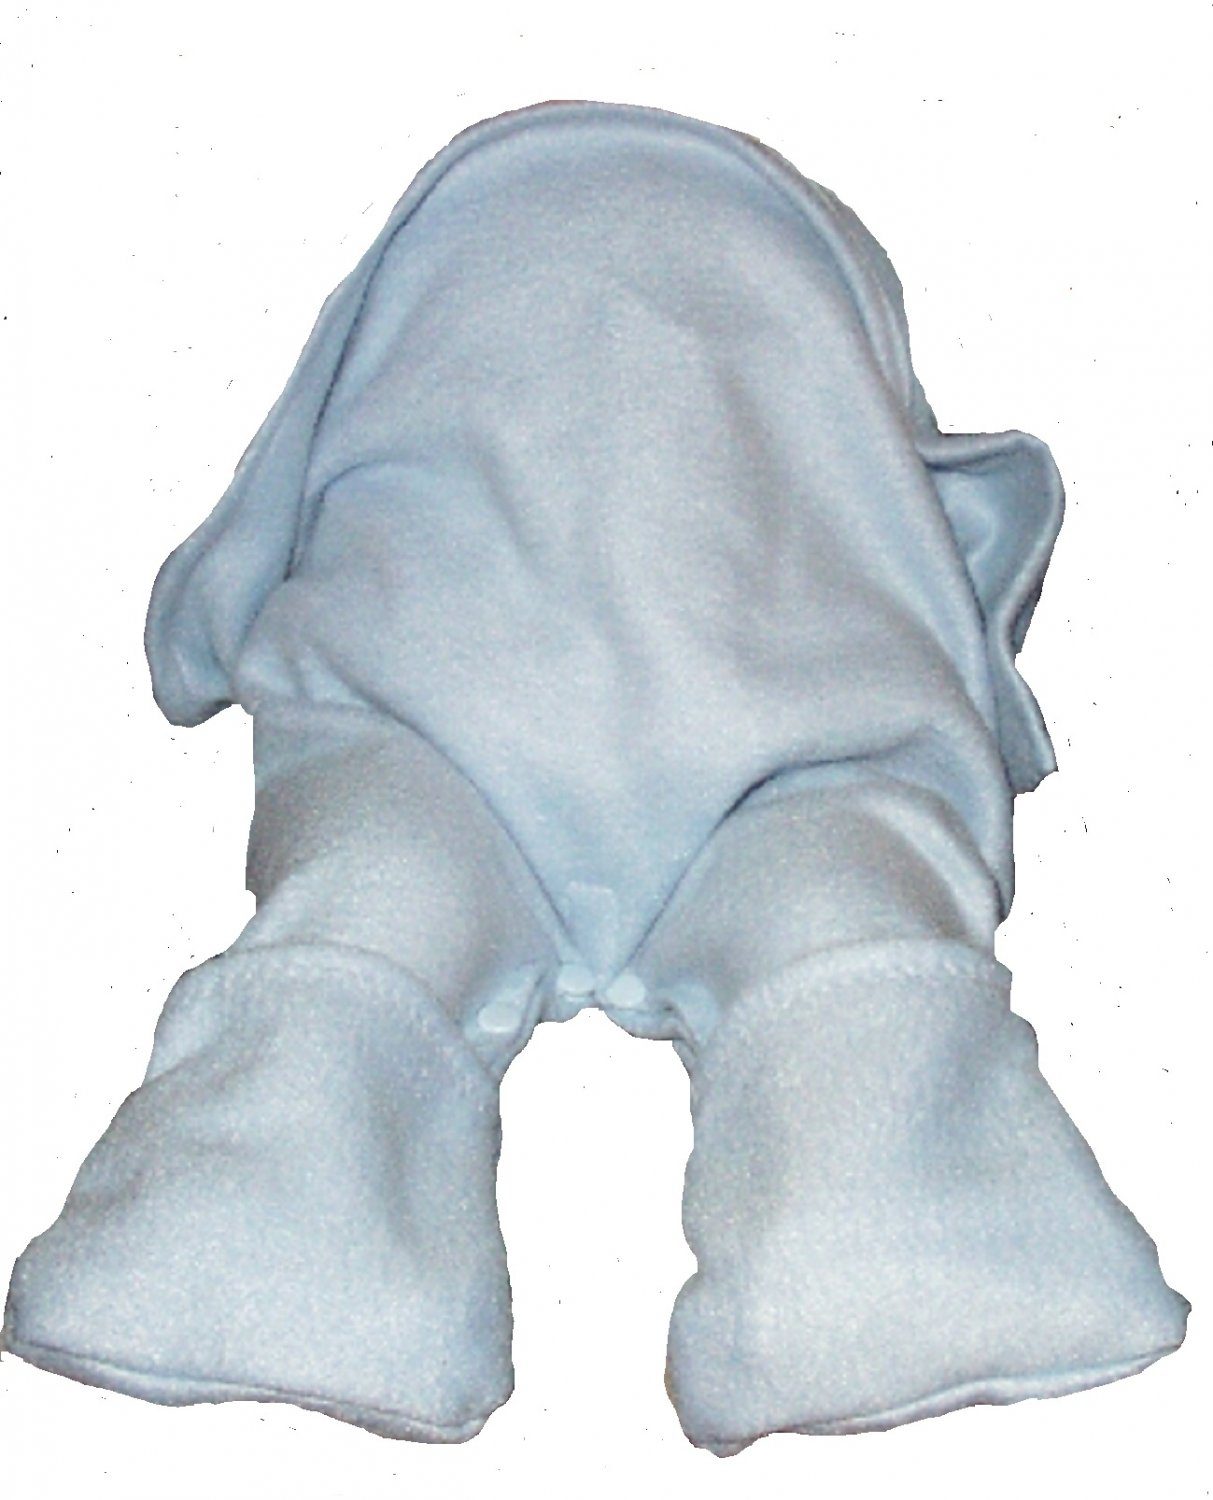 Straddleblanket 6 MONTHS Size SPLIT BABY BLANKET for Bouncer, Stroller, Car Seat  Blue